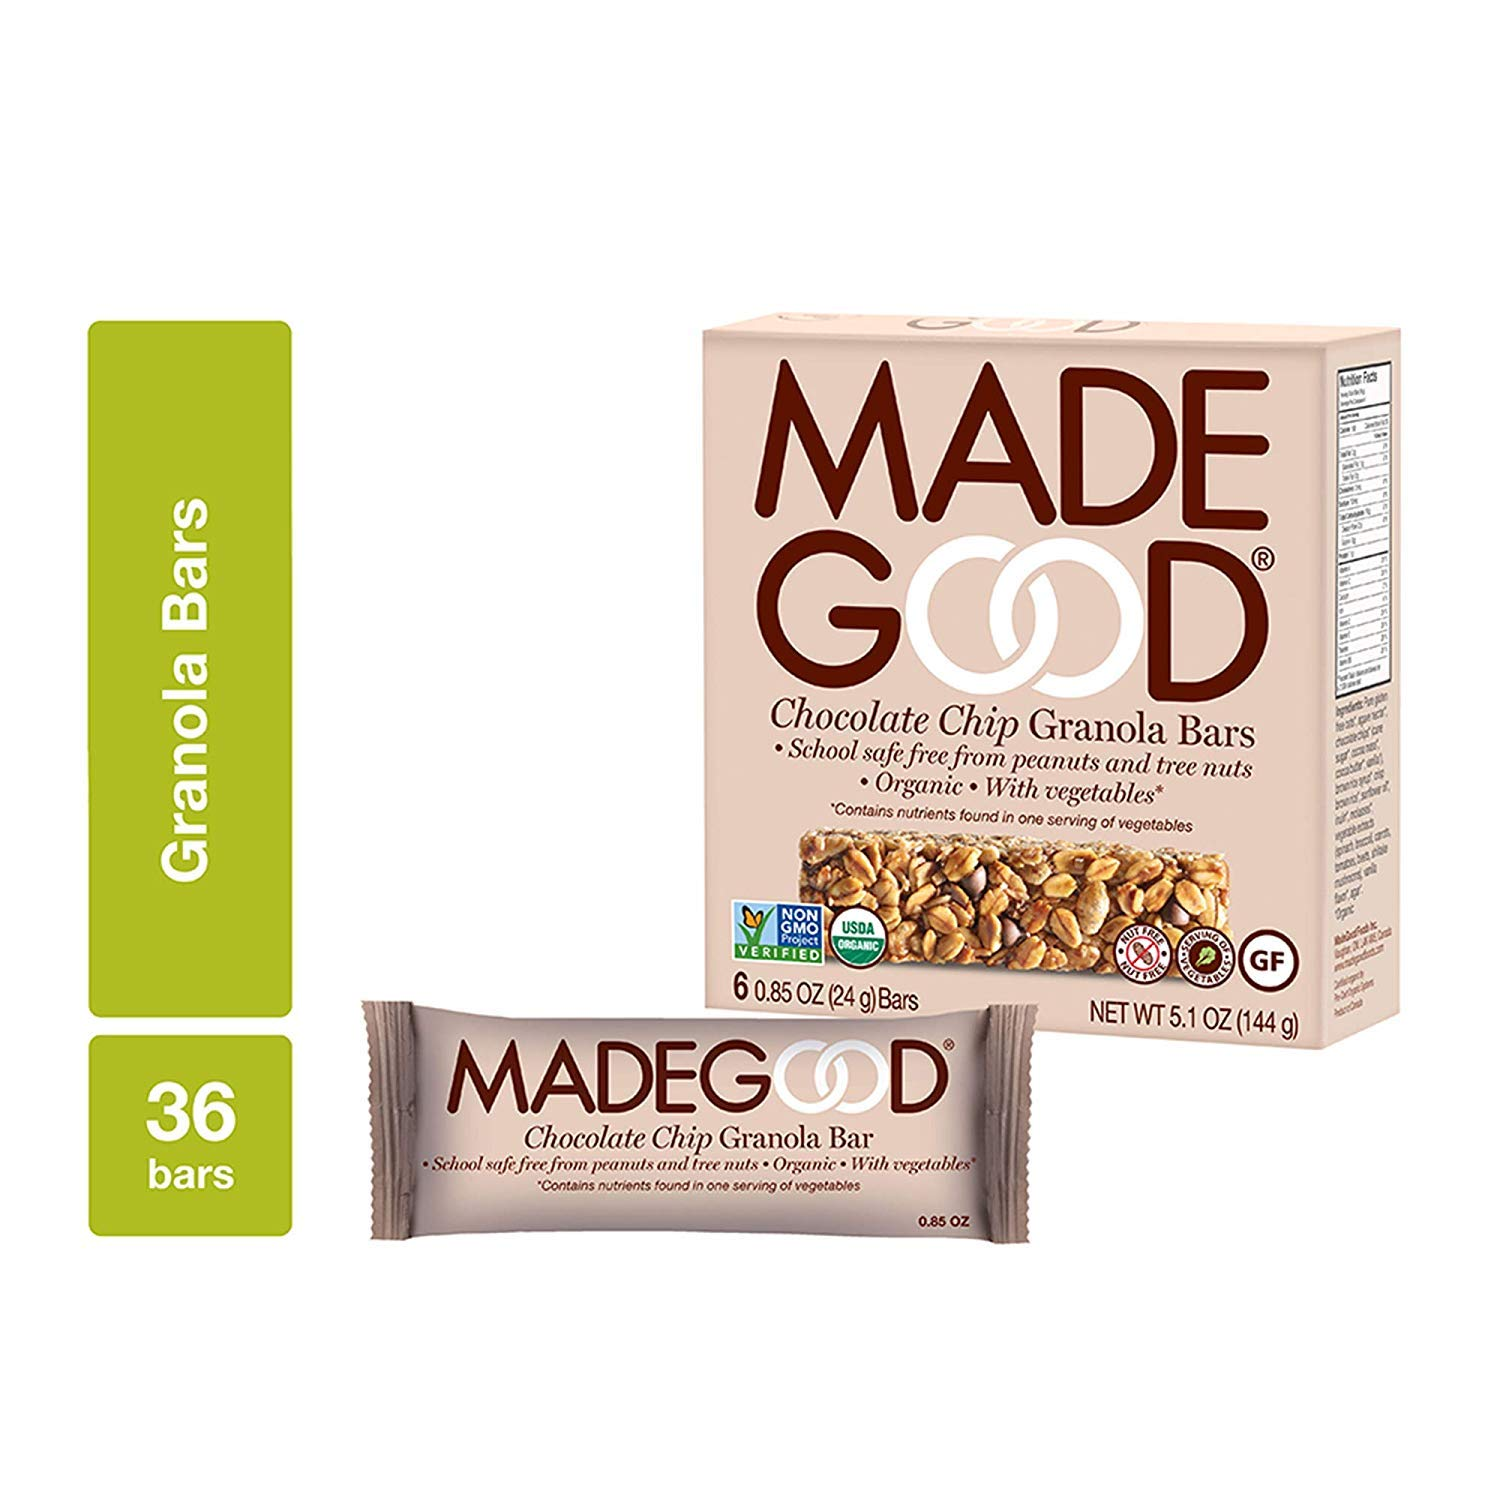 MadeGood Chocolate Chip Granola Bars, 6 Pack (36 bars); Gluten Free Oats and Delicious Chocolate Chips; Contains Nutrients of One Serving of Vegetables; Allergy-Friendly, Full of Chewy, Tasty Goodness by Made Good